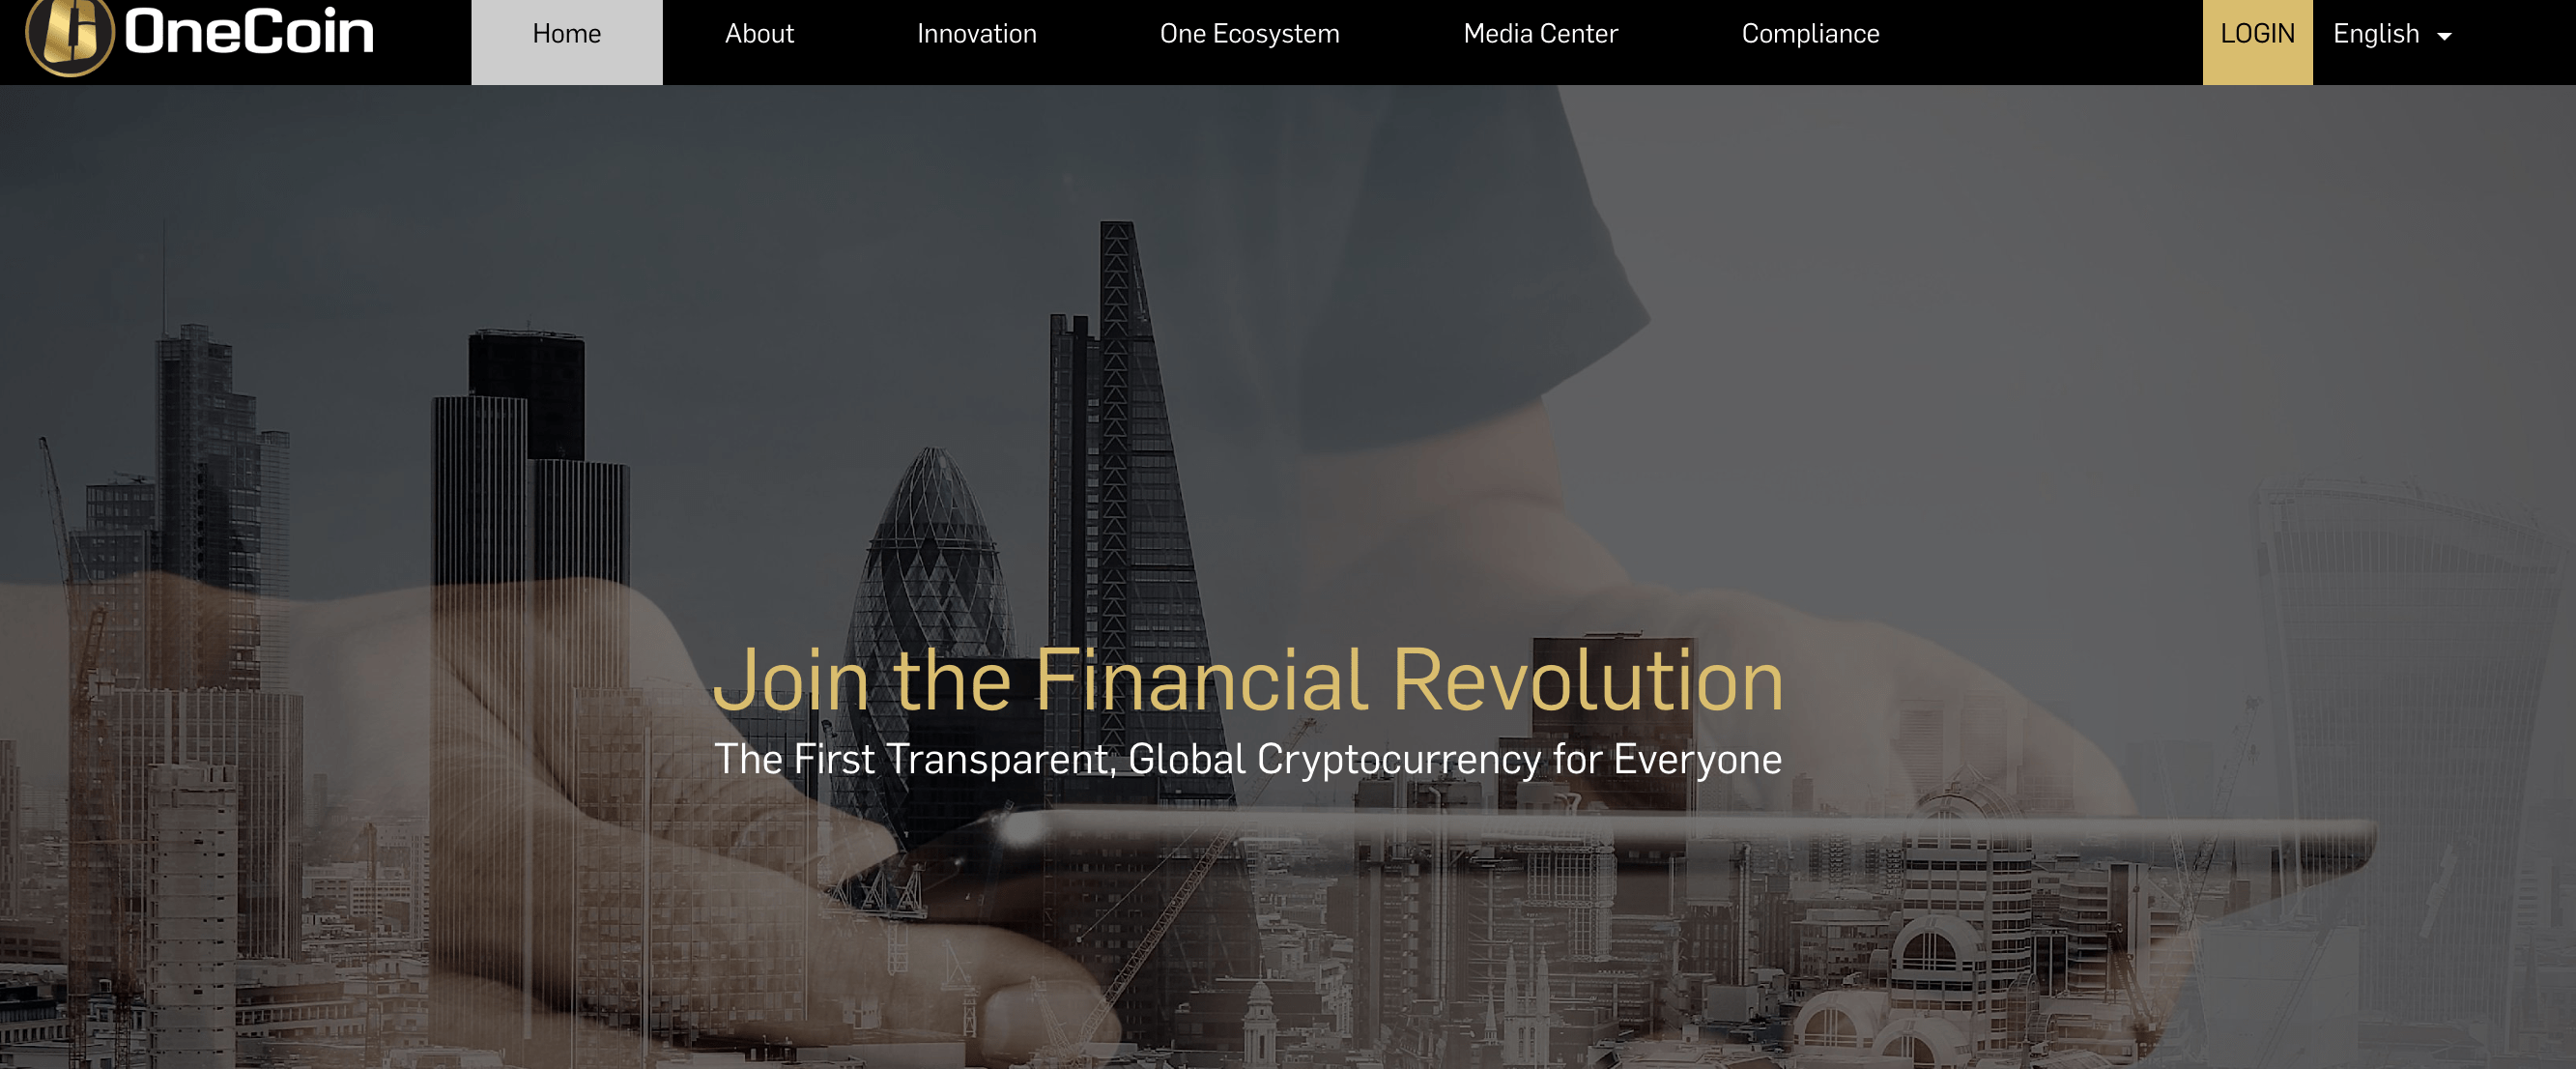 OneCoin website